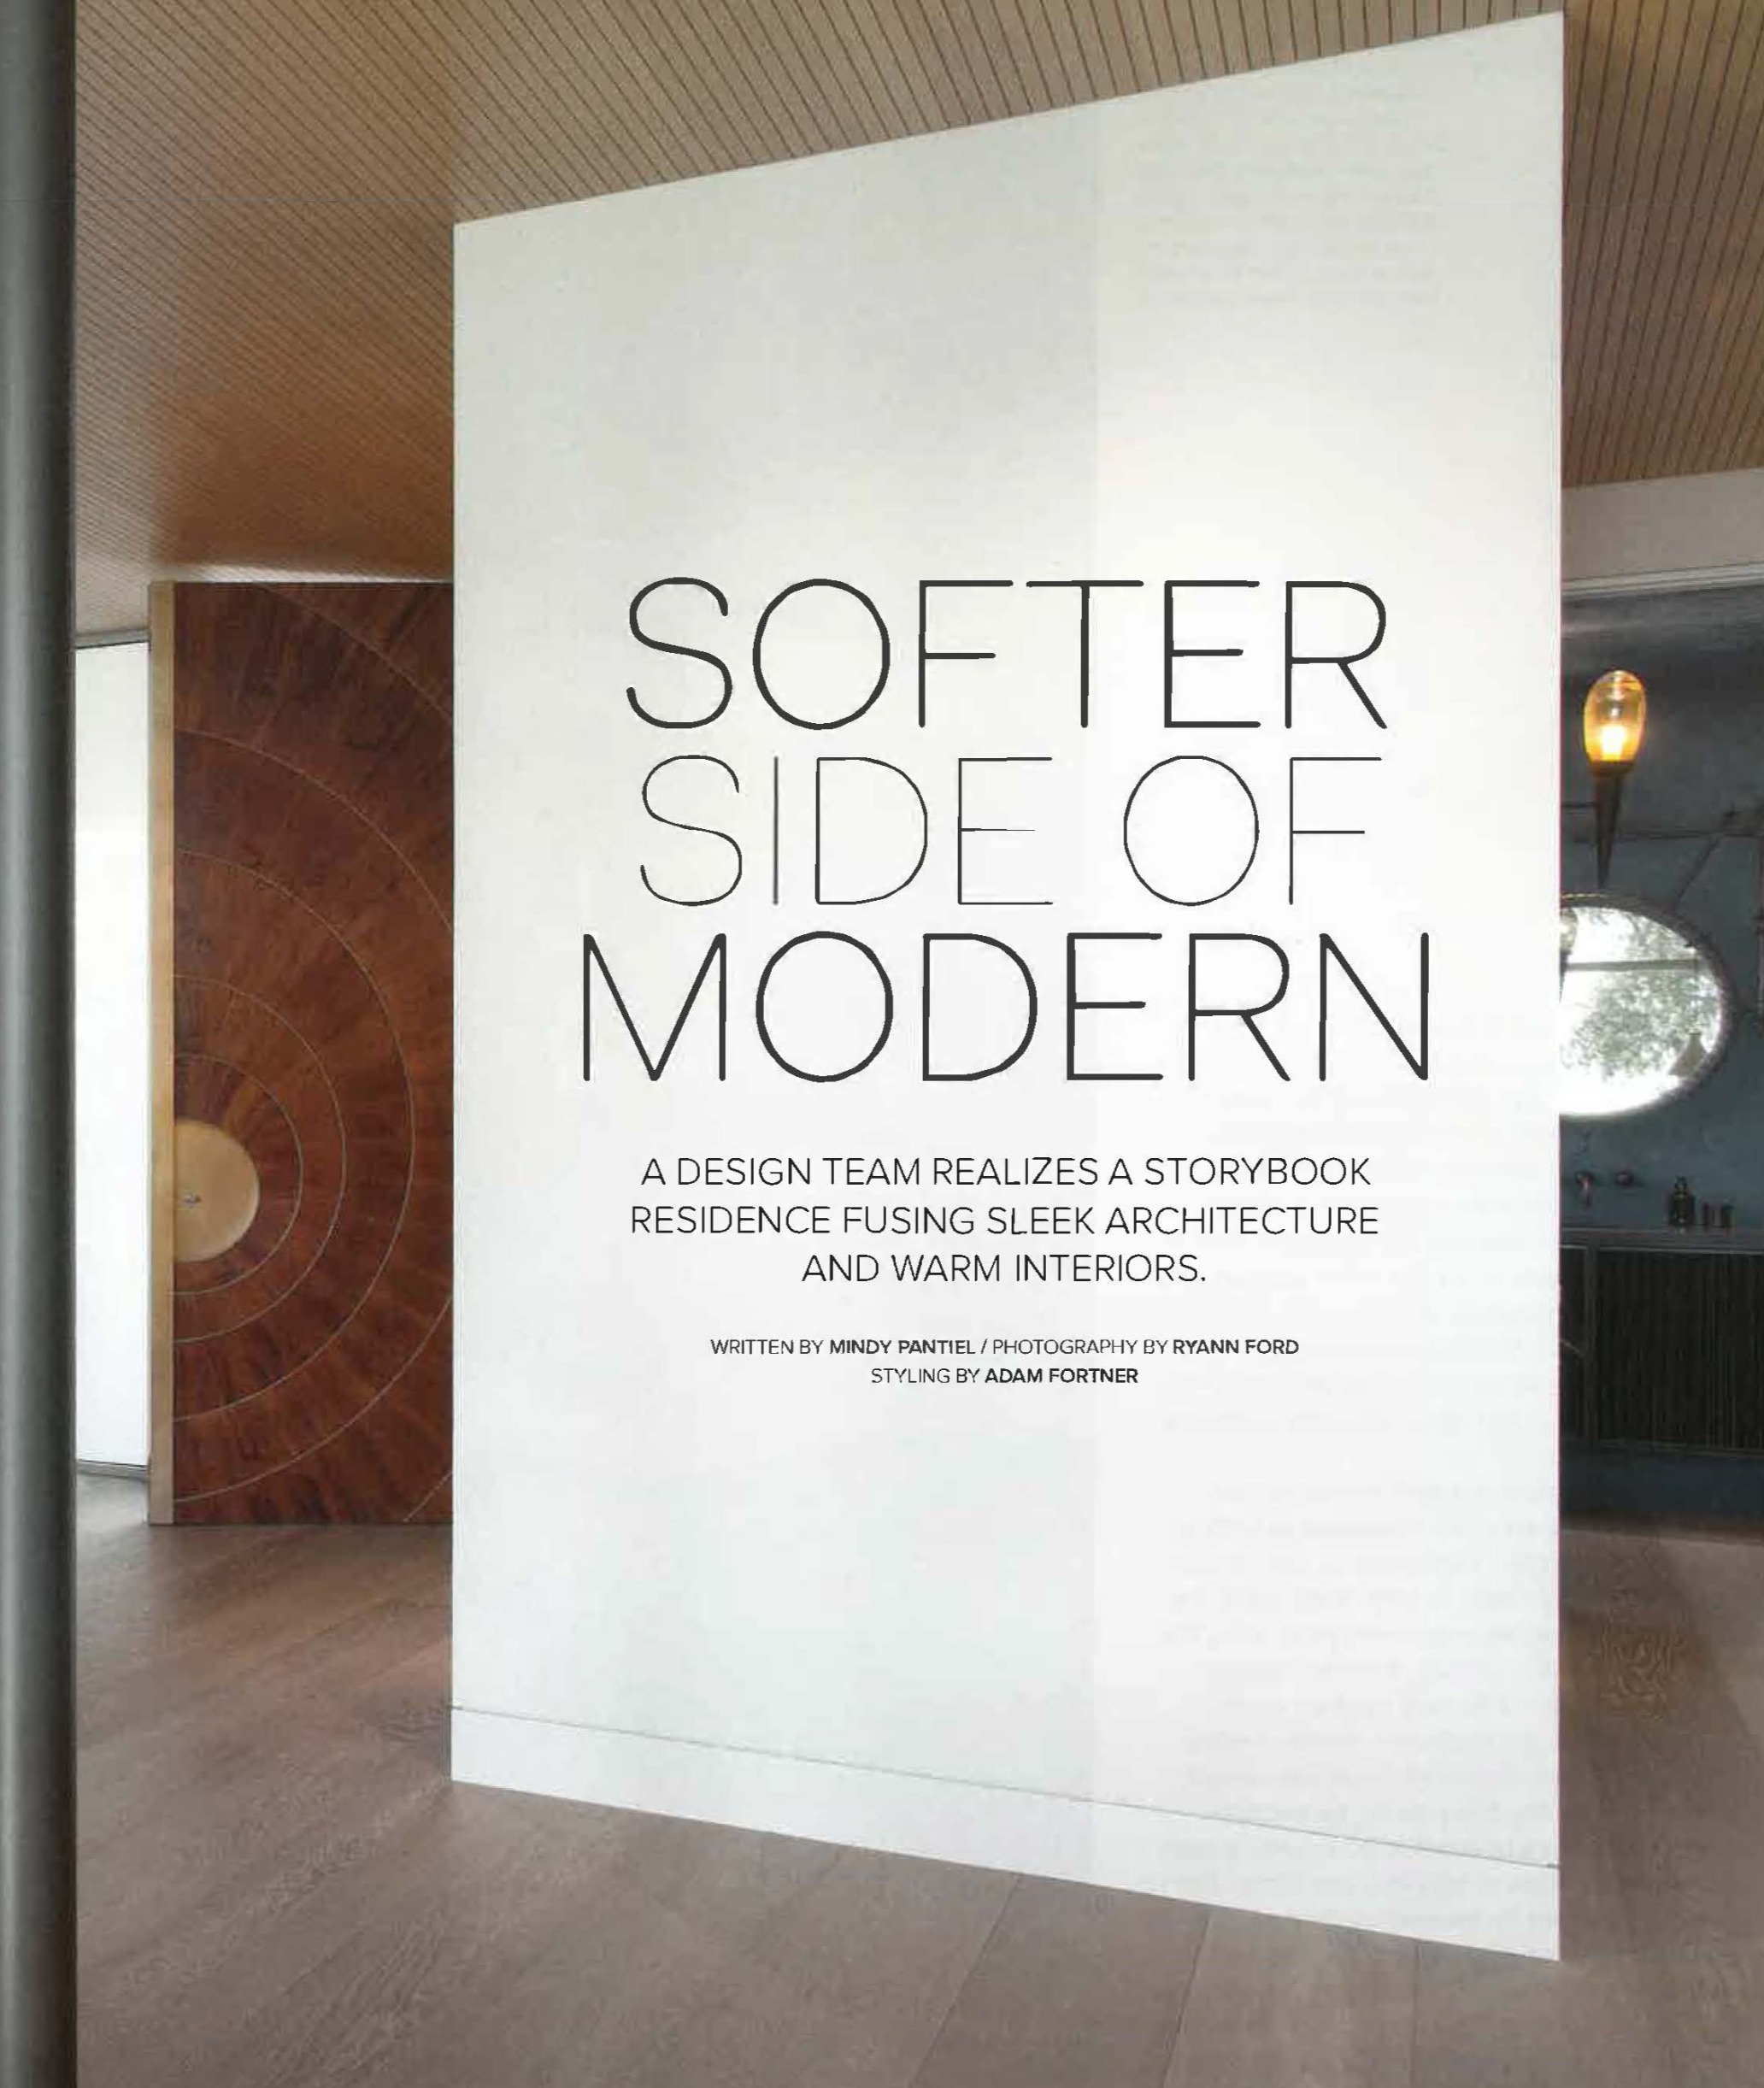 Softer Side of Modern